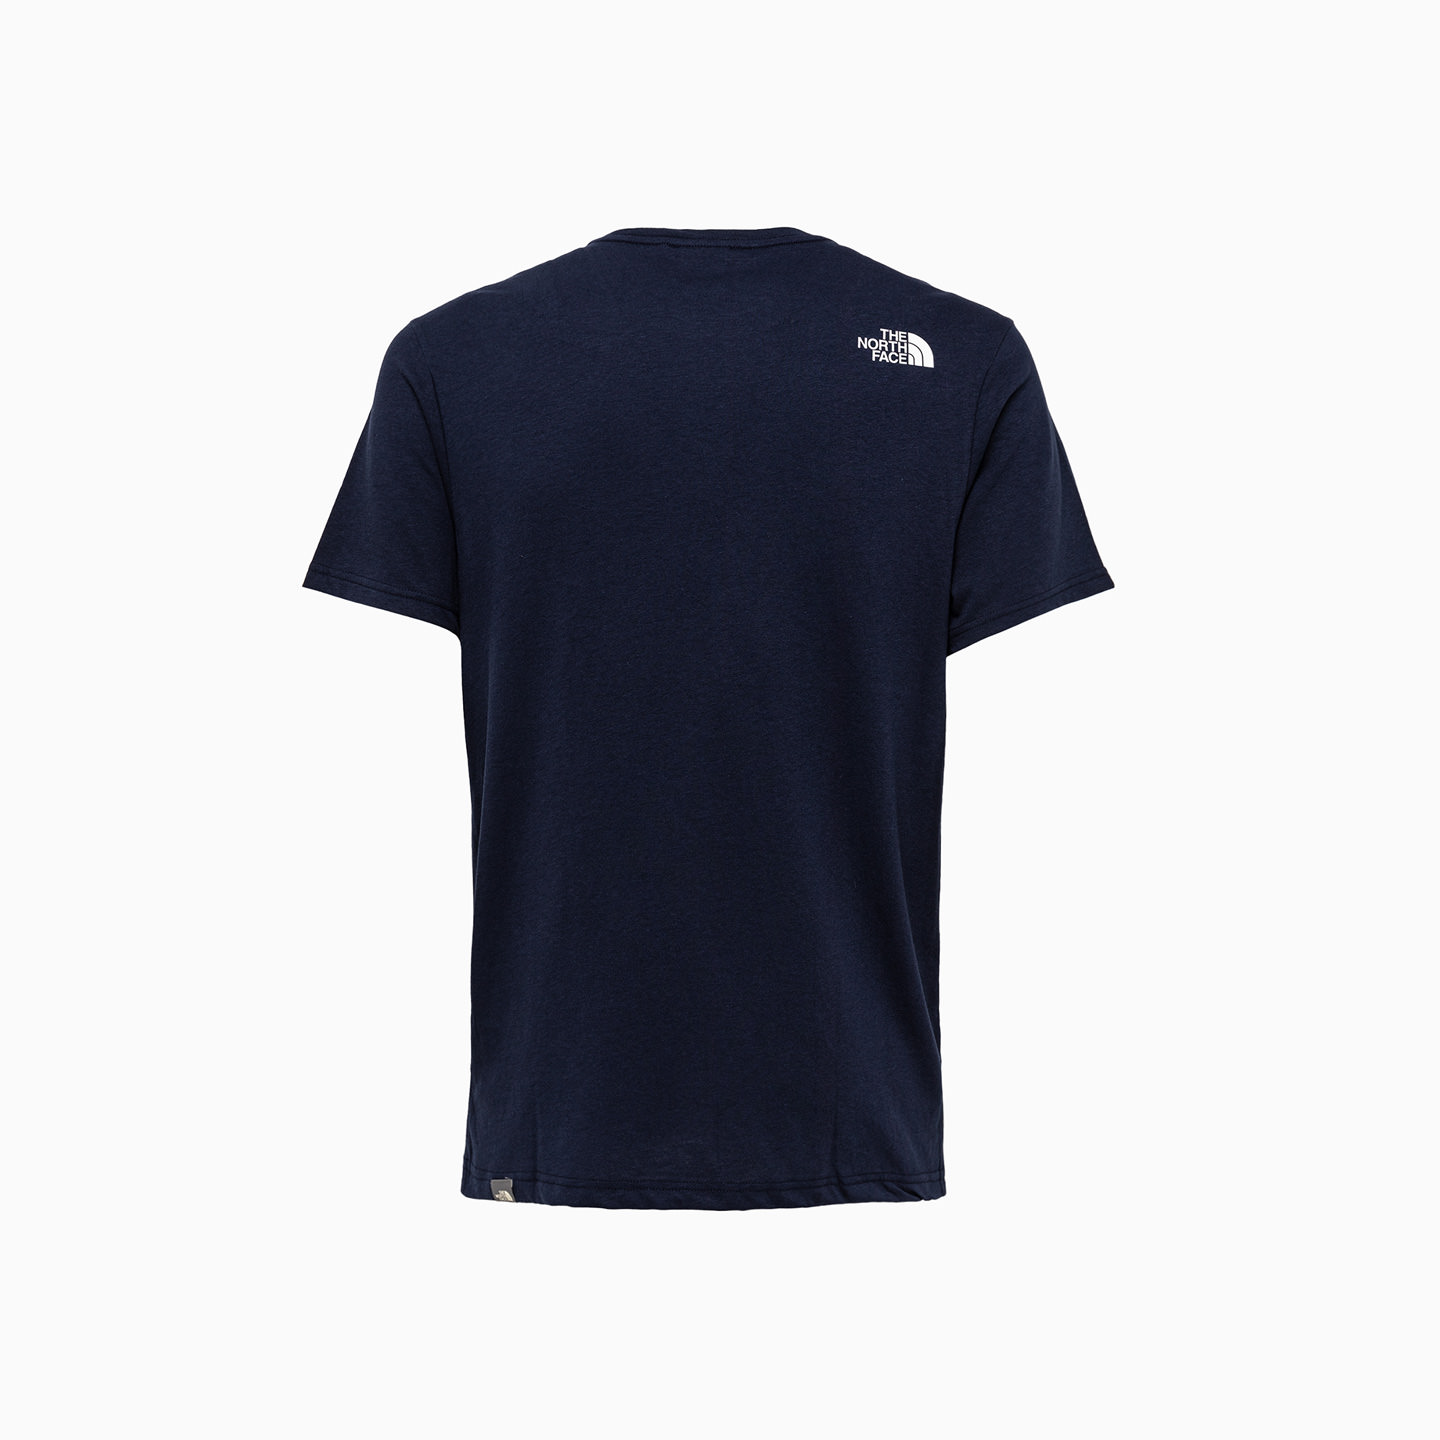 The North Face T-Shirt Berekely California_2